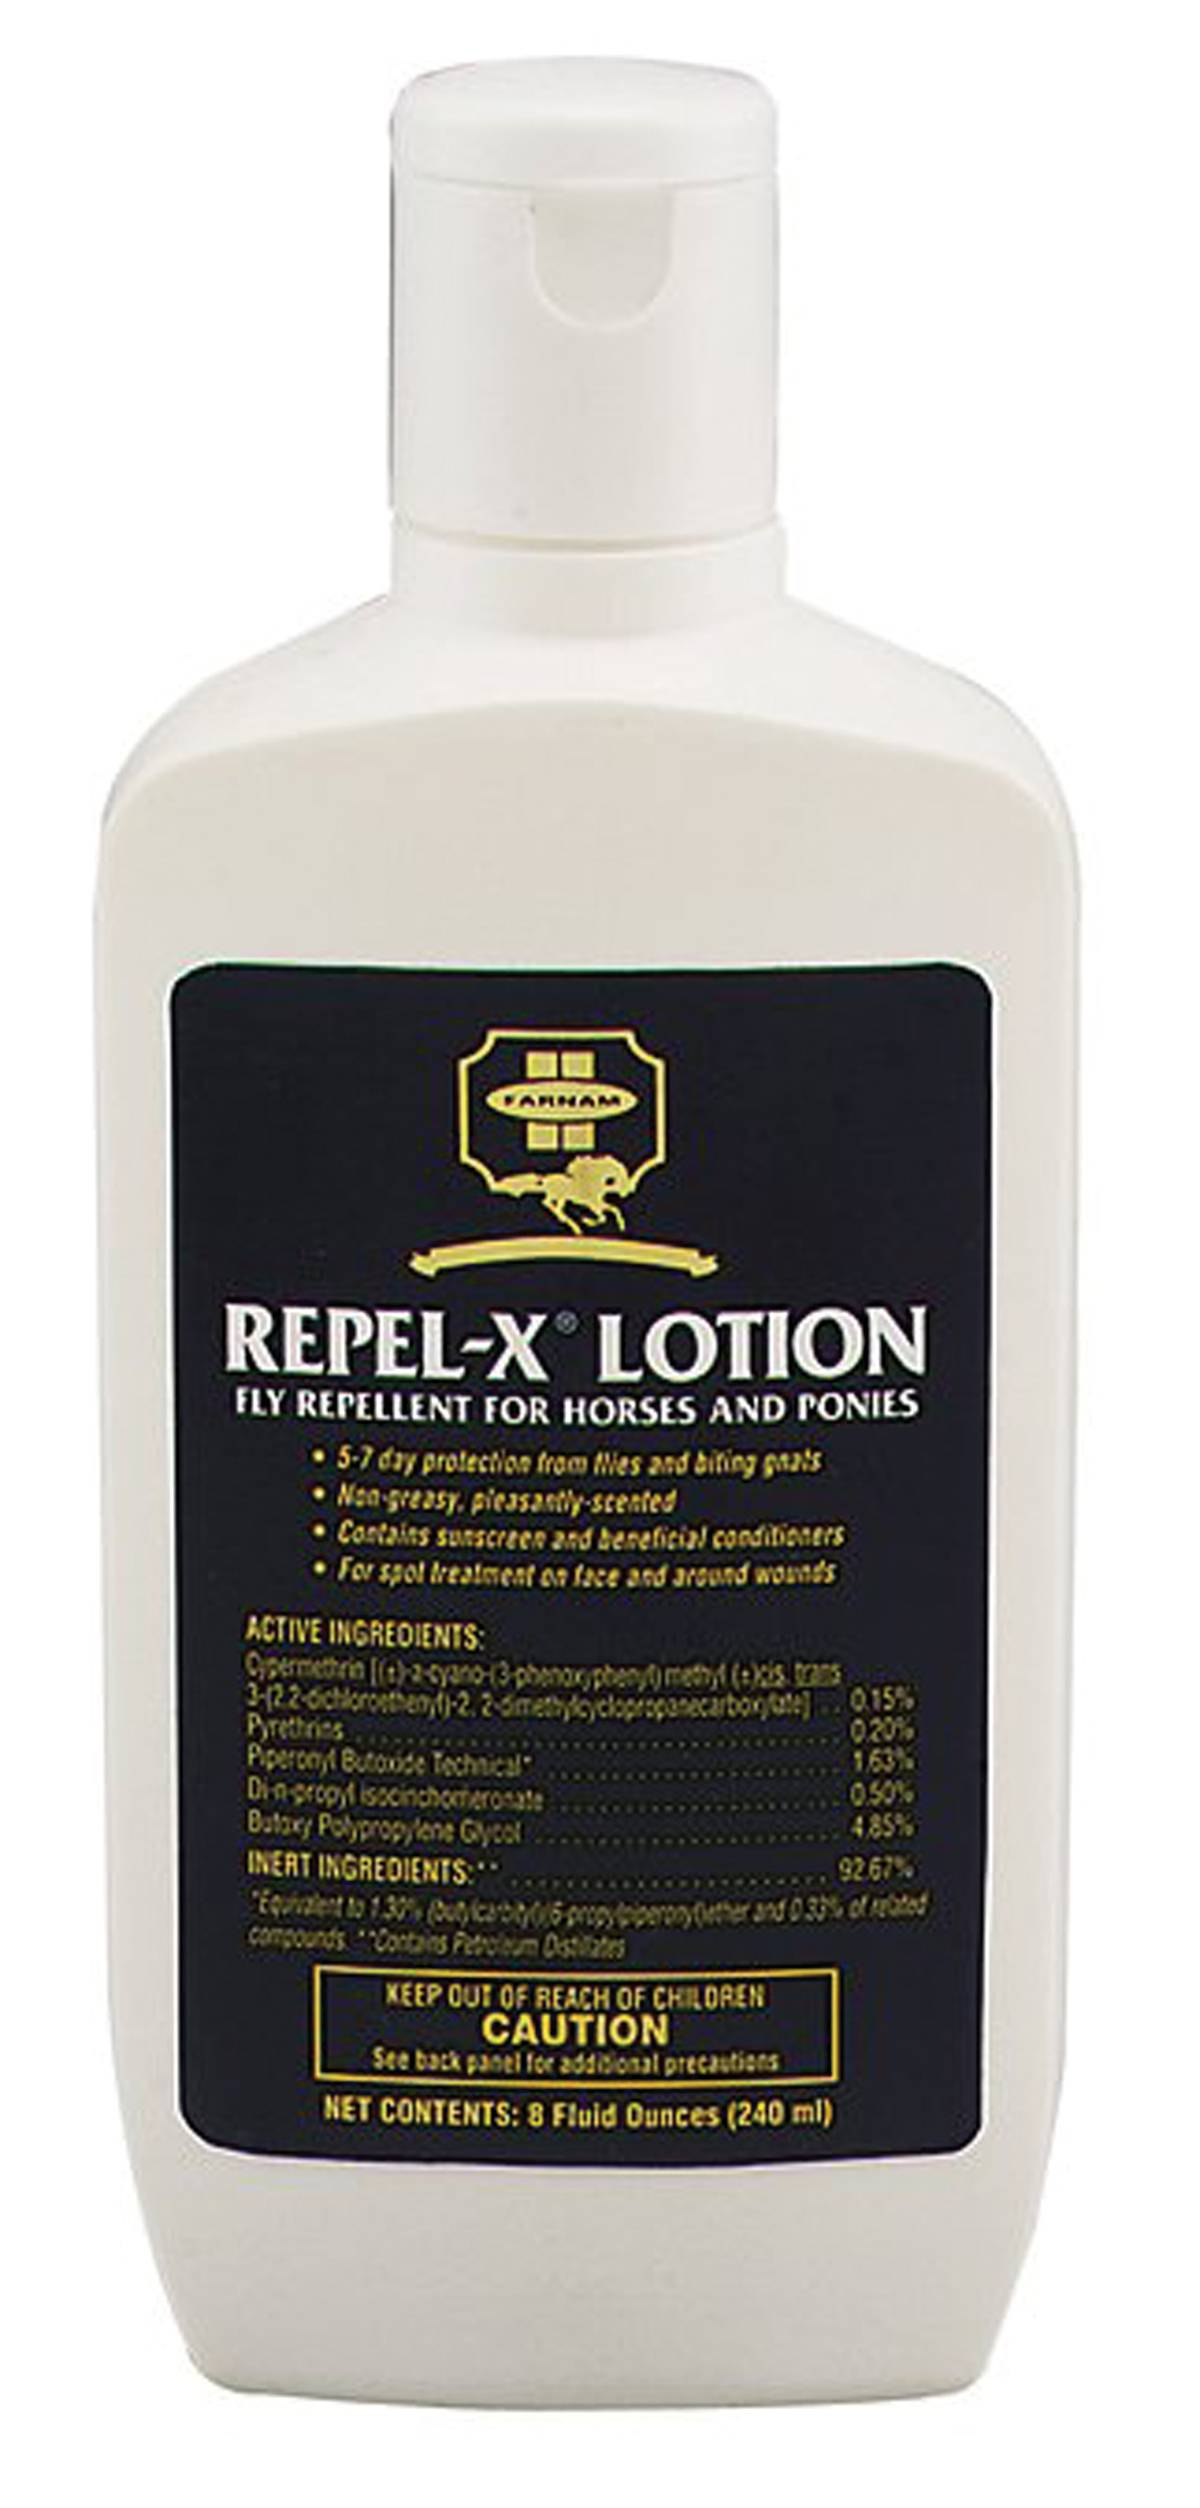 Farnam Repel-X Lotion Fly Repellent